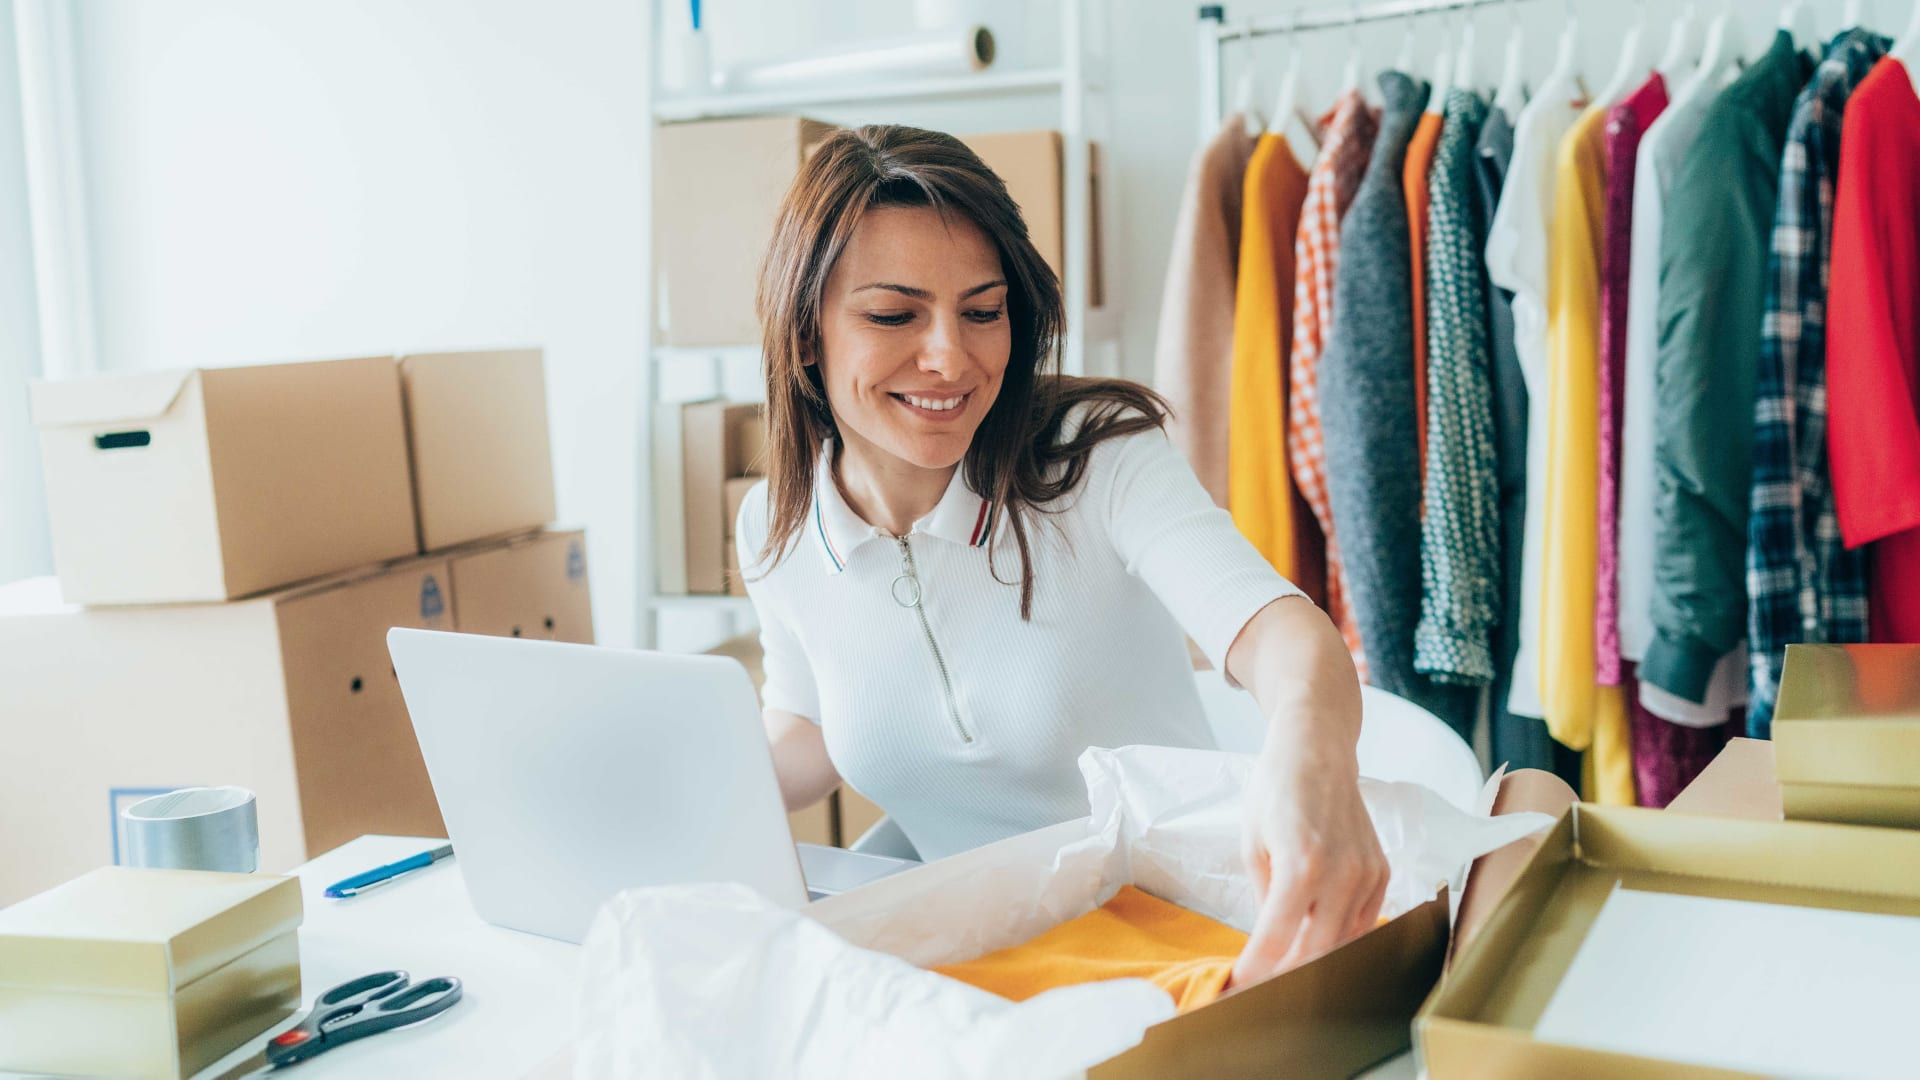 7 Things Your E-Commerce Packaging Needs to Make a Good Impression